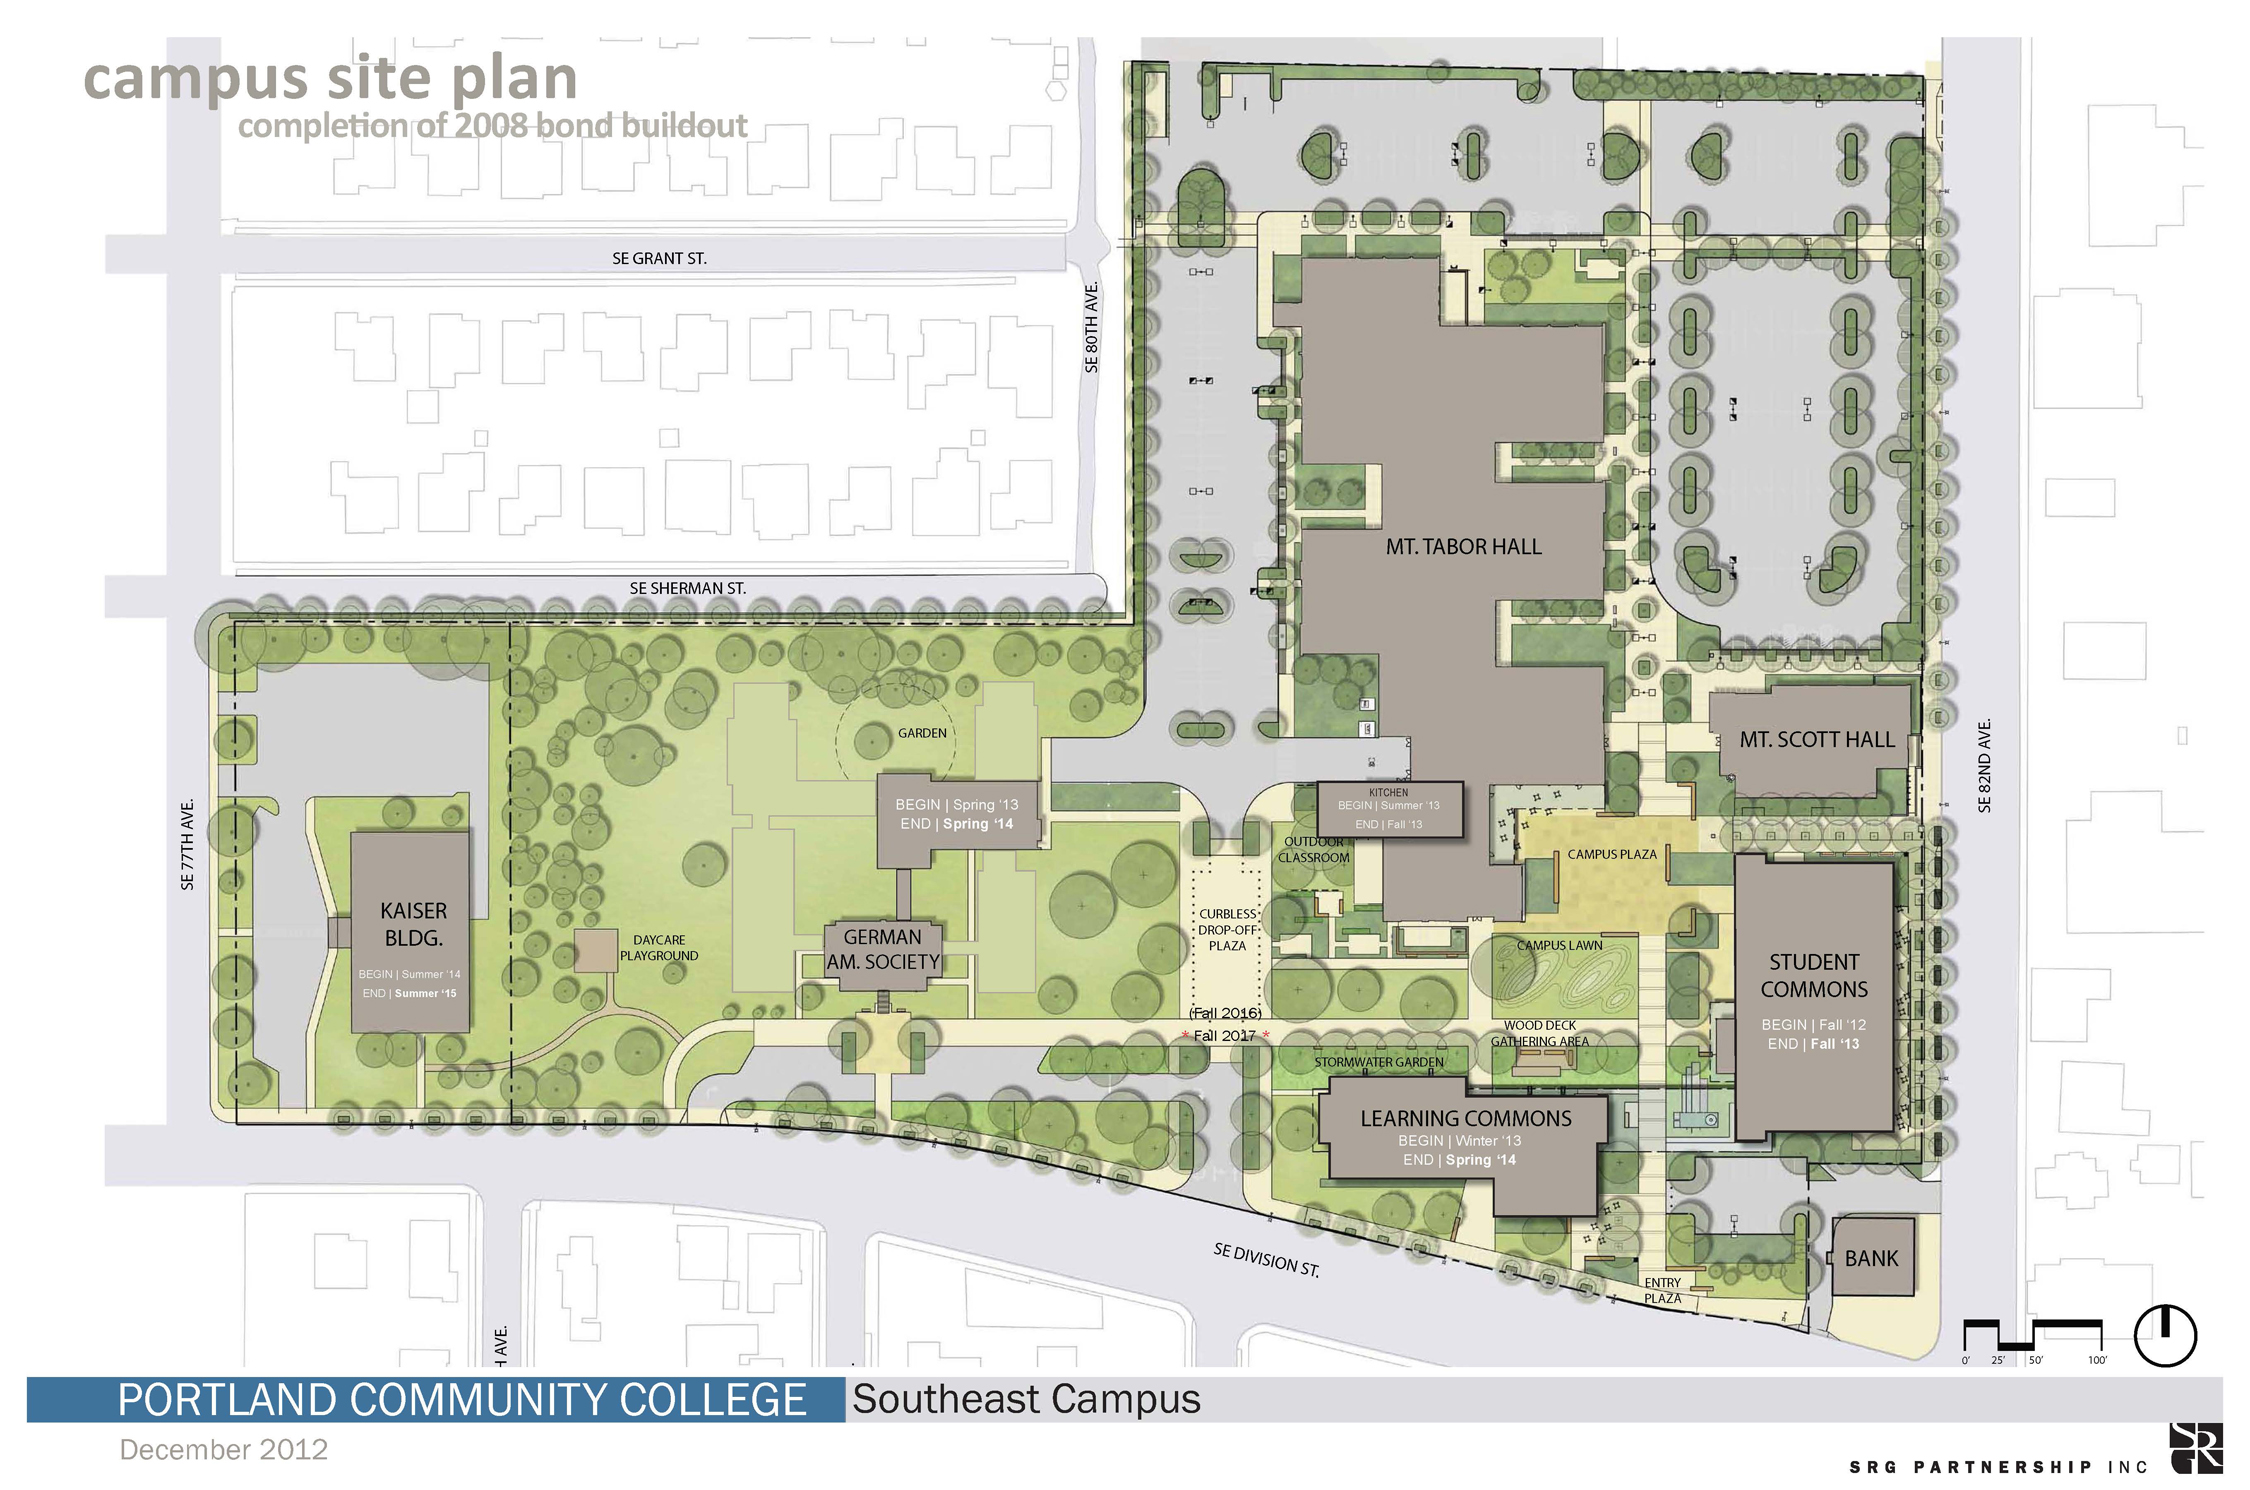 12.12.06 – SE Campus Schedule Site Plan – smaller image size for web ...